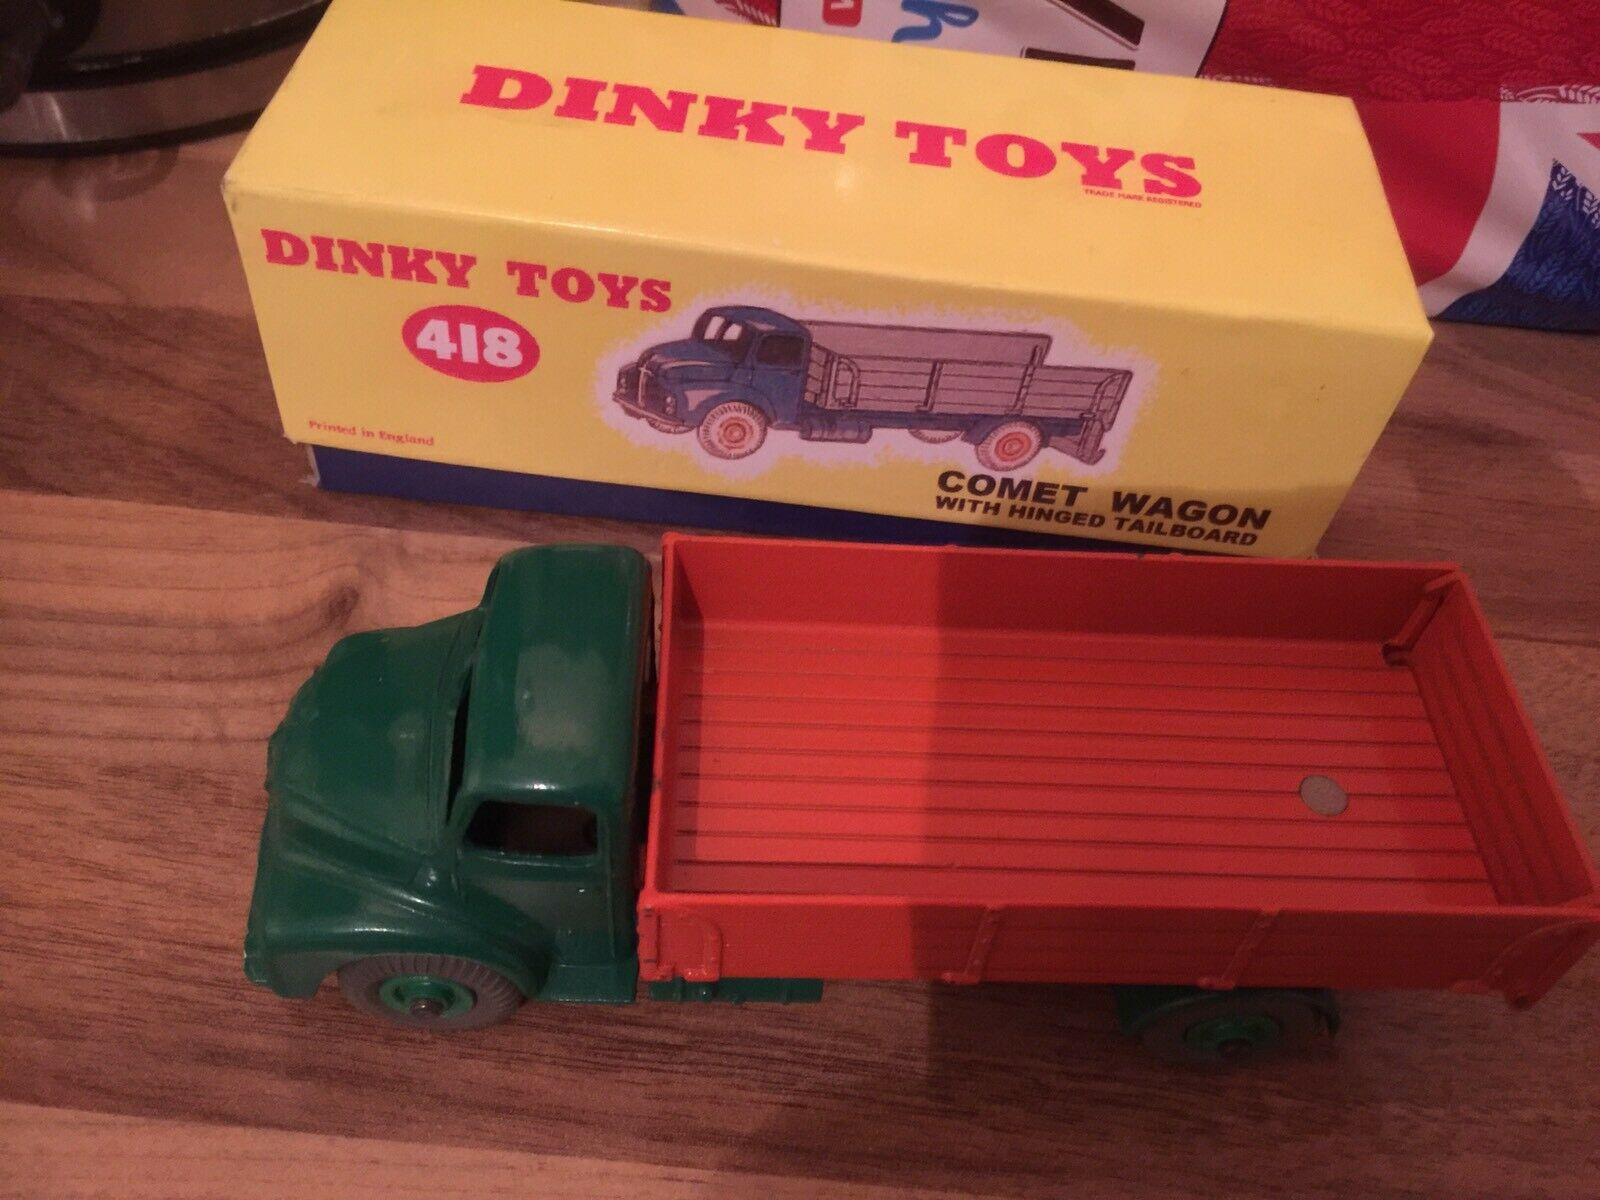 DINKY TOYS 418, LEYLAND COMET WITH HINGED TAILBOARD.